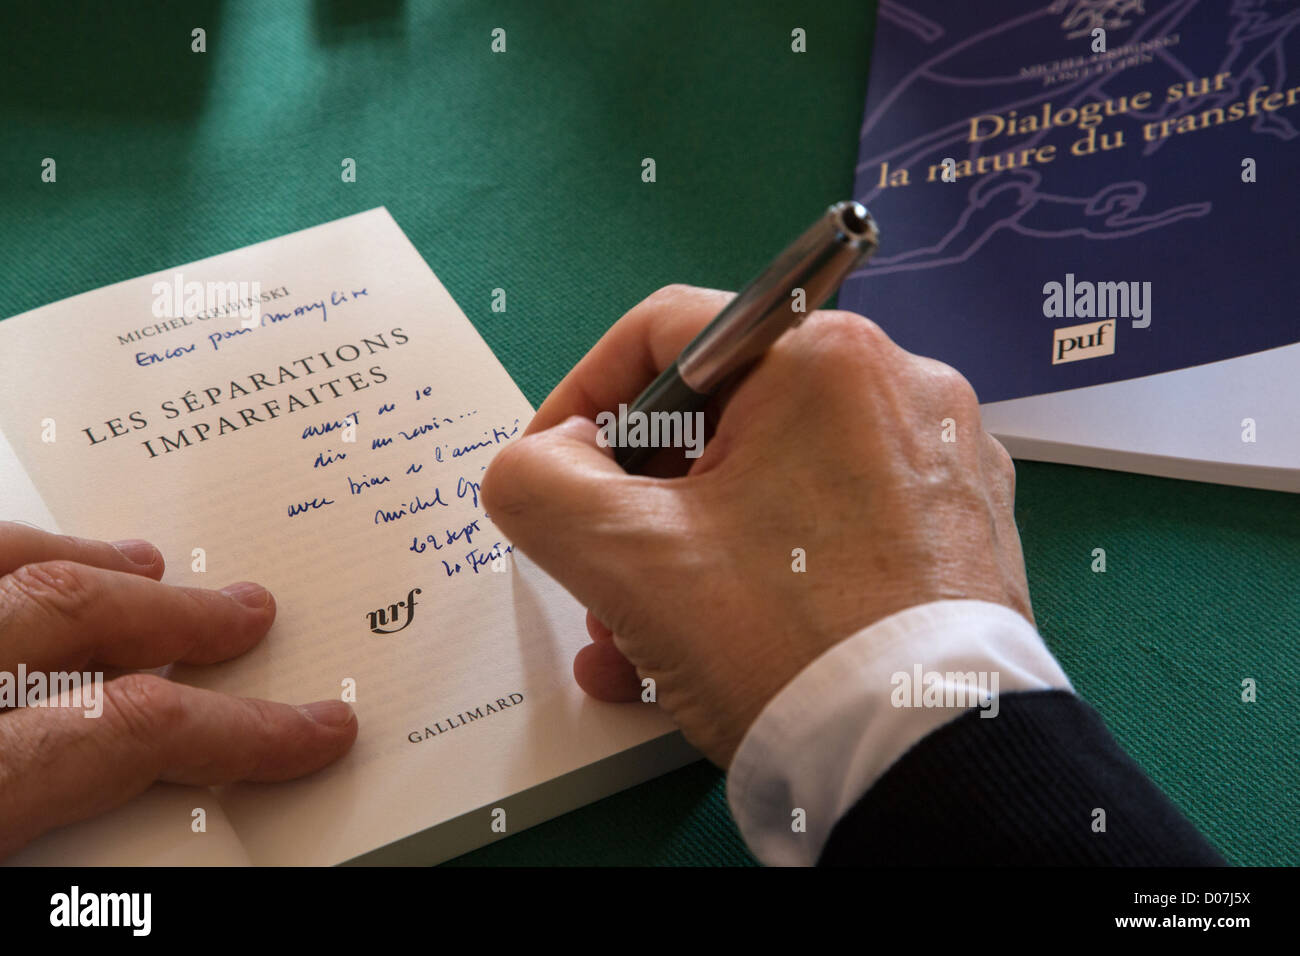 DEDICATION BY THE AUTHORS BOOK FESTIVAL DOMAINE DE SAINT-SIMON LA FERTE-VIDAME EURE-ET-LOIR (28) FRANCE - Stock Image